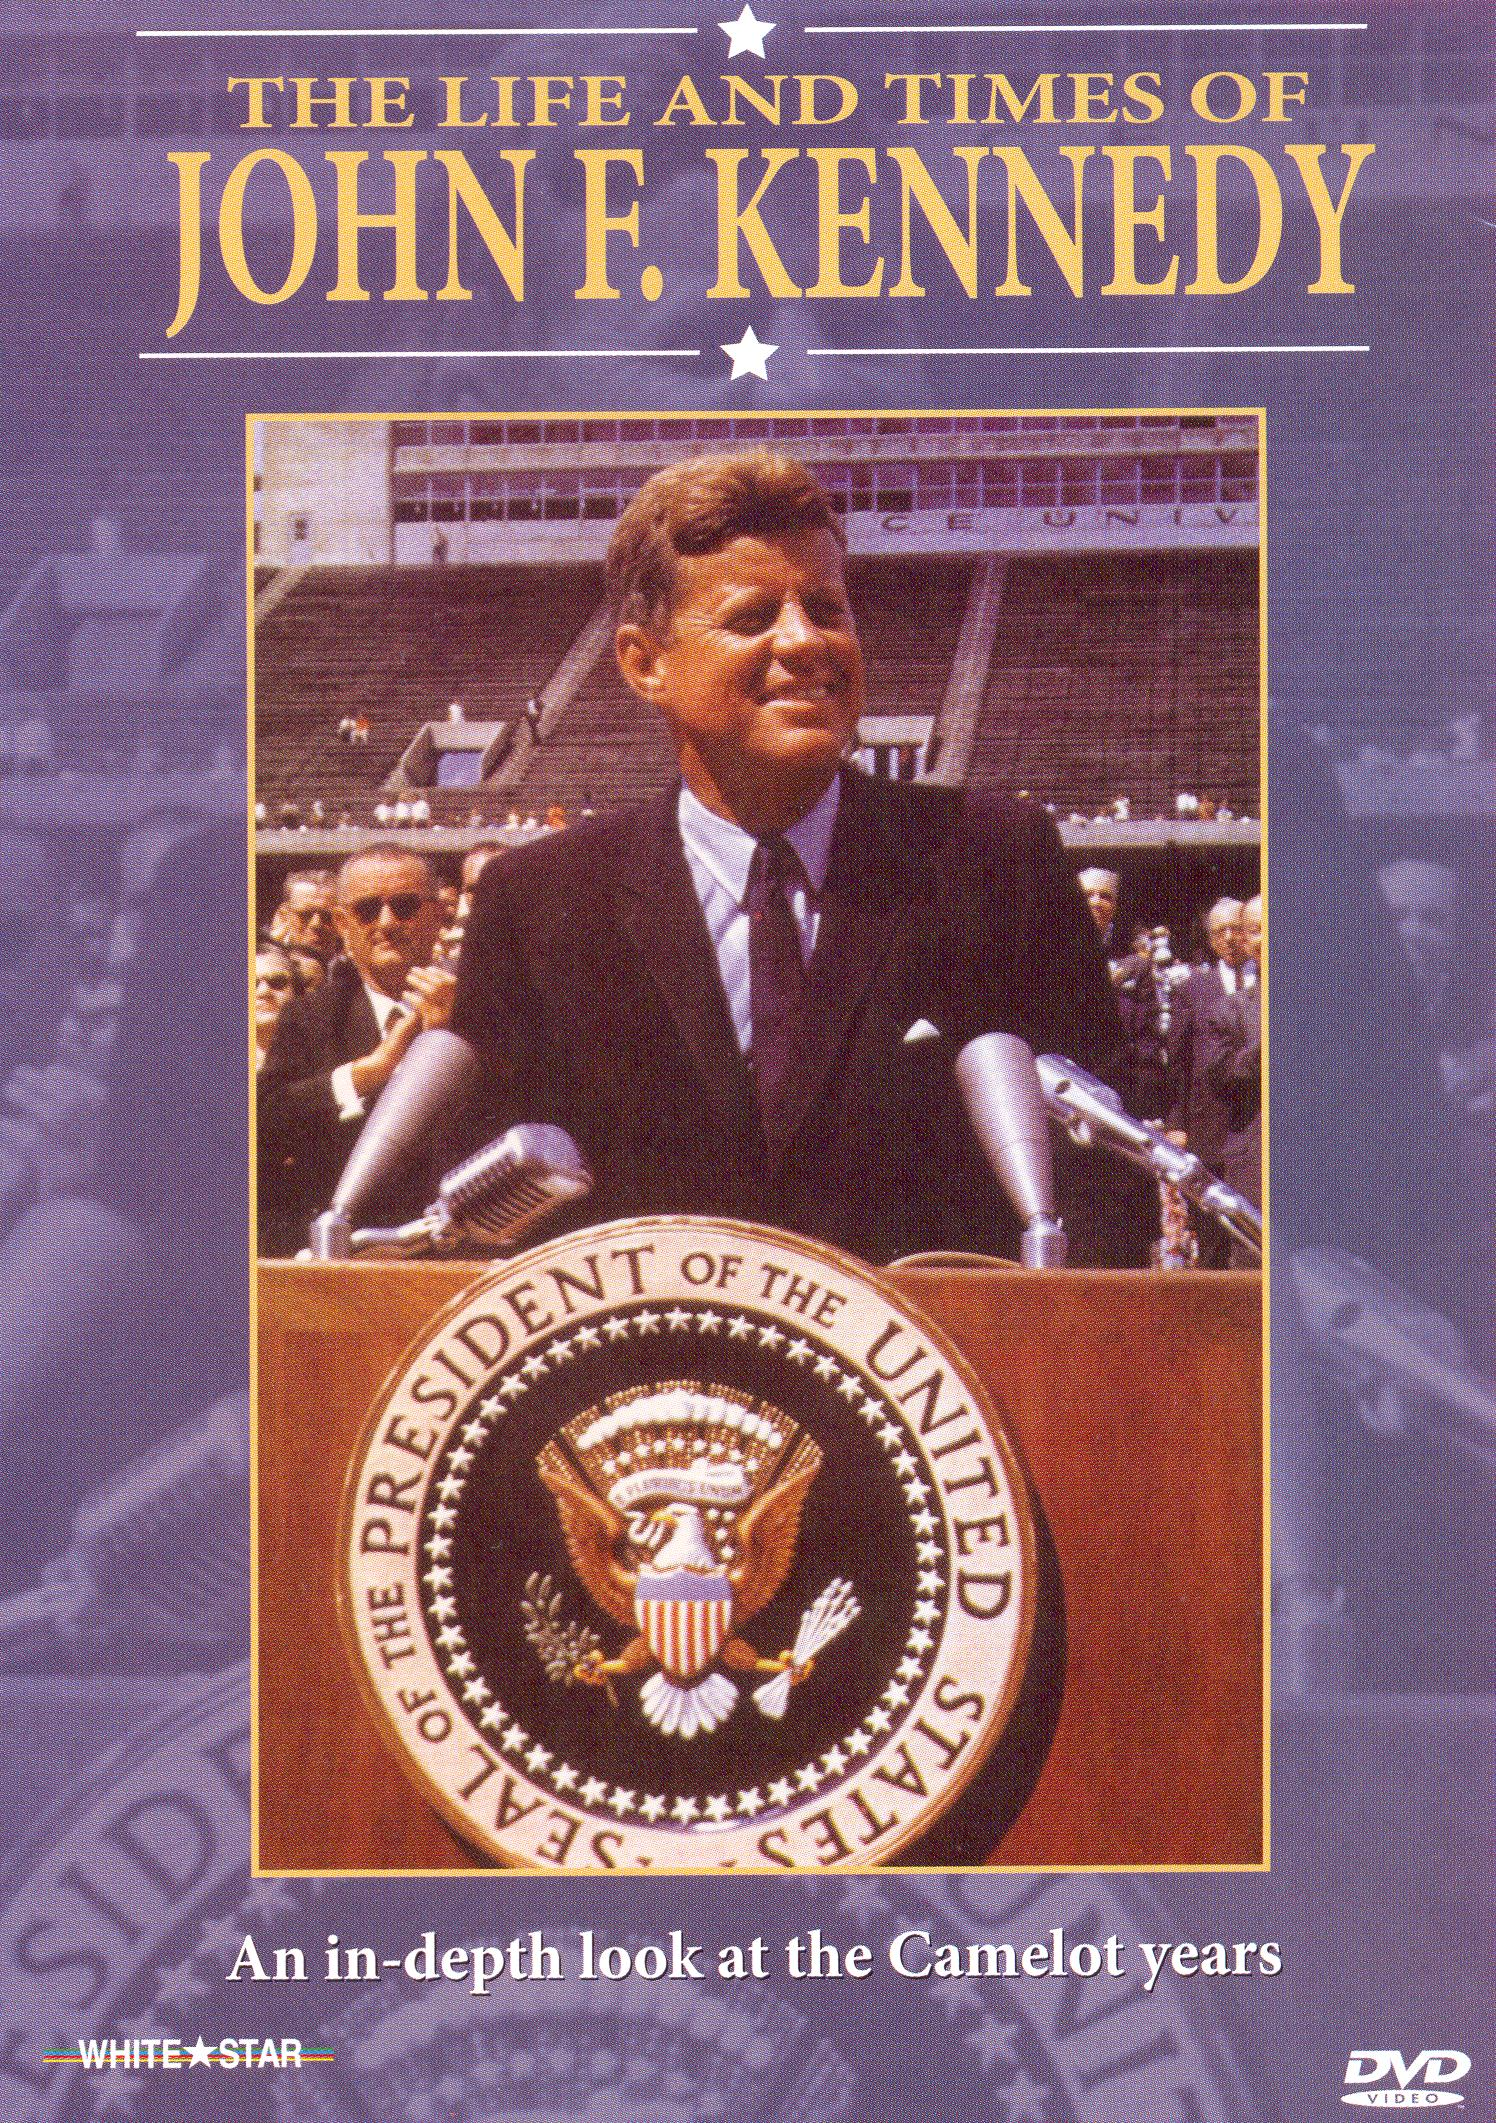 life and works of john fitzgerald kennedy John fitzgerald kennedy was born on may 29, 1917 in the boston suburb ofbrookline kennedy was the s  the vicepresidential nomination of his the young president: an essay on the life and times of jfk (includes works cited) lar political figures, whose attitudes and ideals have shaped society.